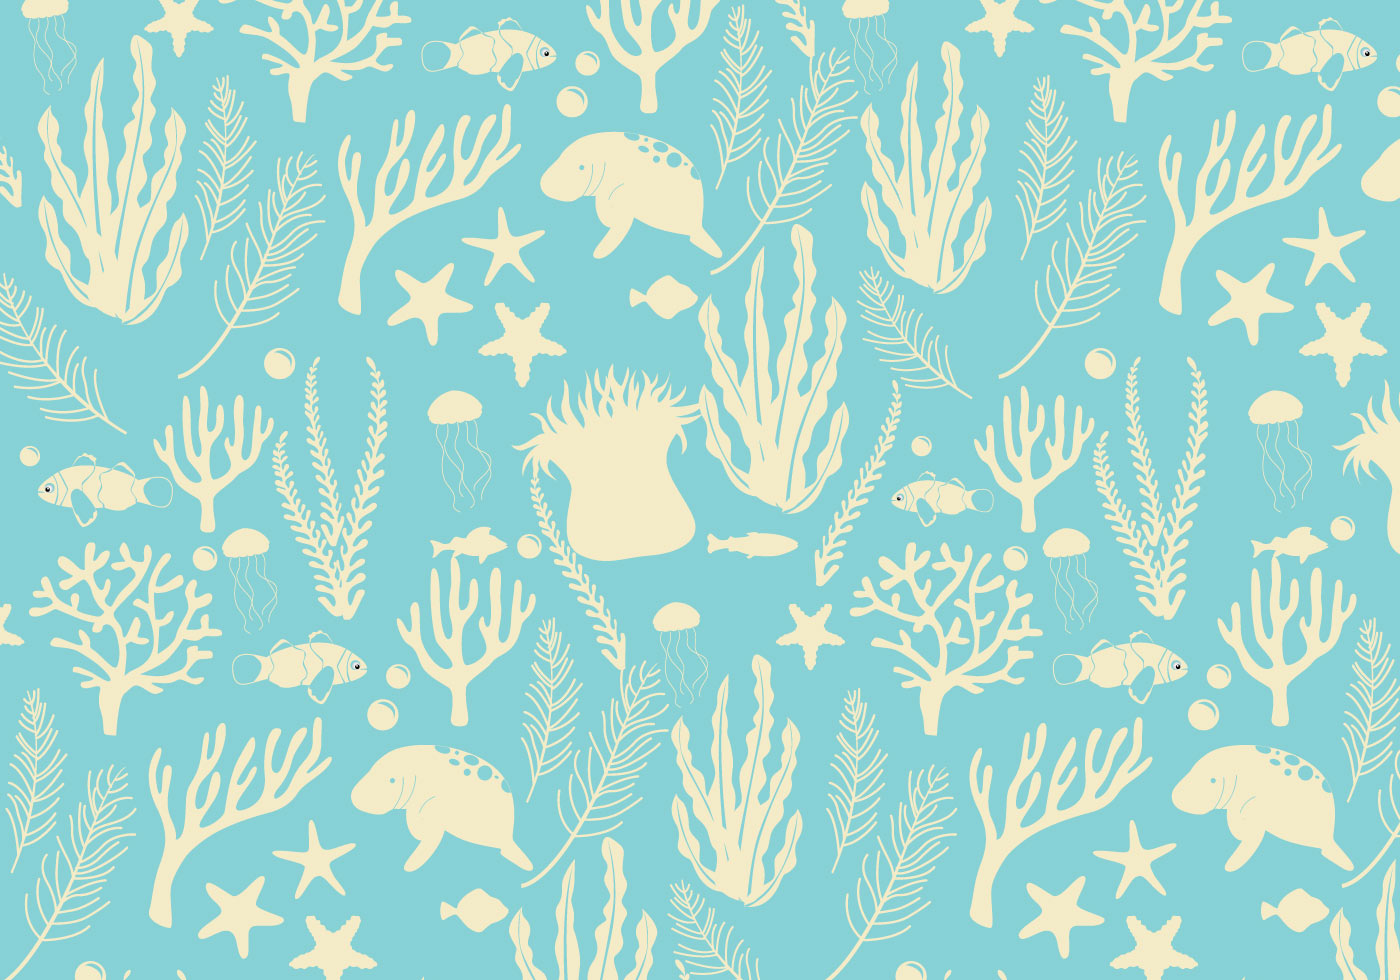 sea free vector art 19142 free downloads